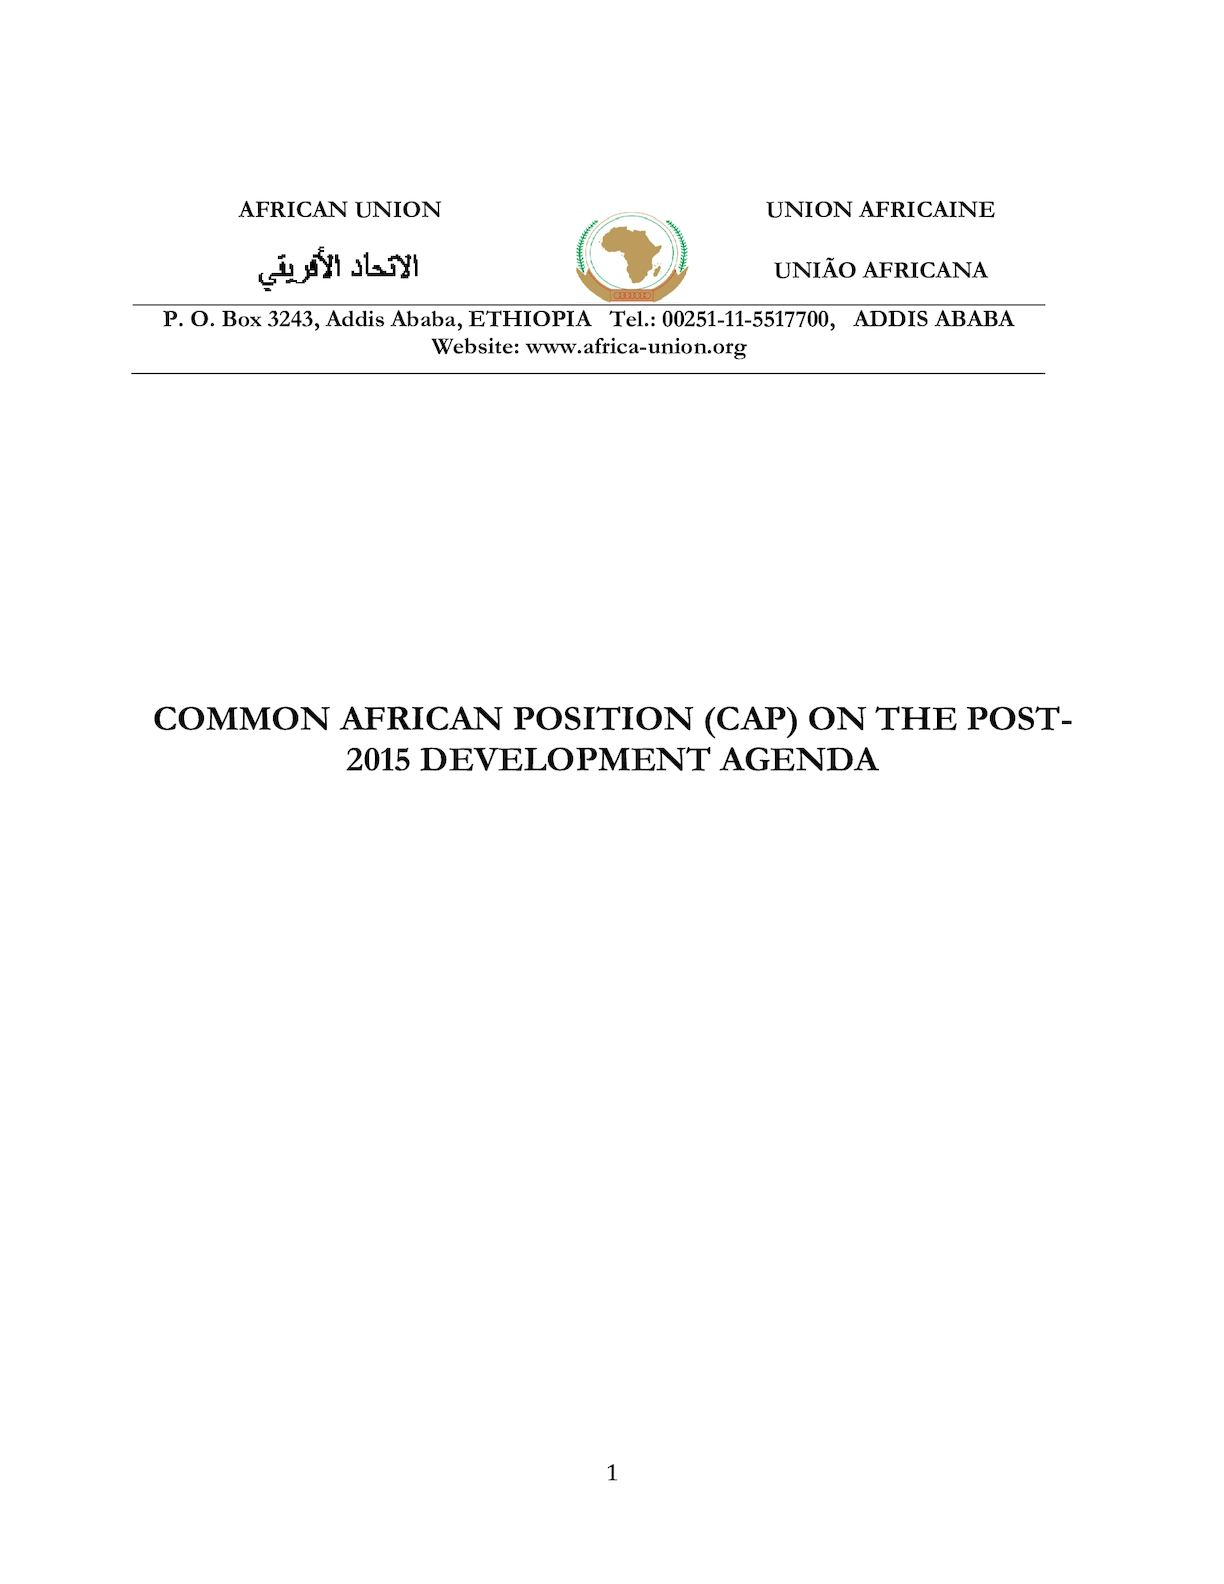 African Common Position On The Post 2015 Development Agenda - Ndjamena - FINAL[1] (1).